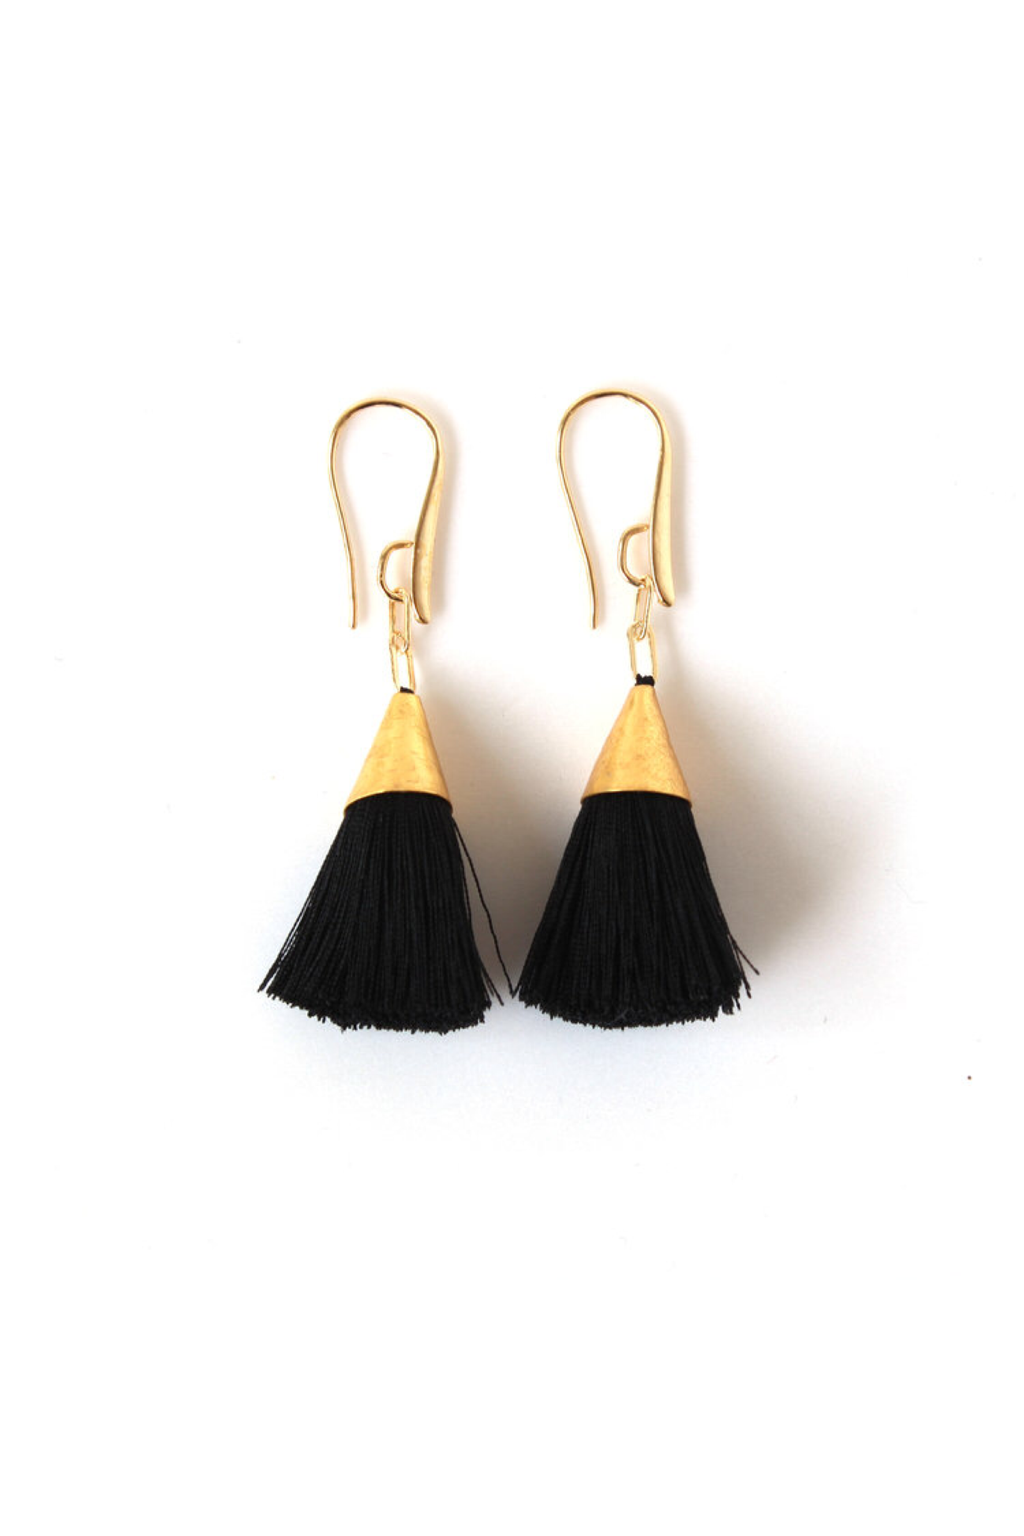 Black Kate Tassel Earrings - ROSE MADE SHOP